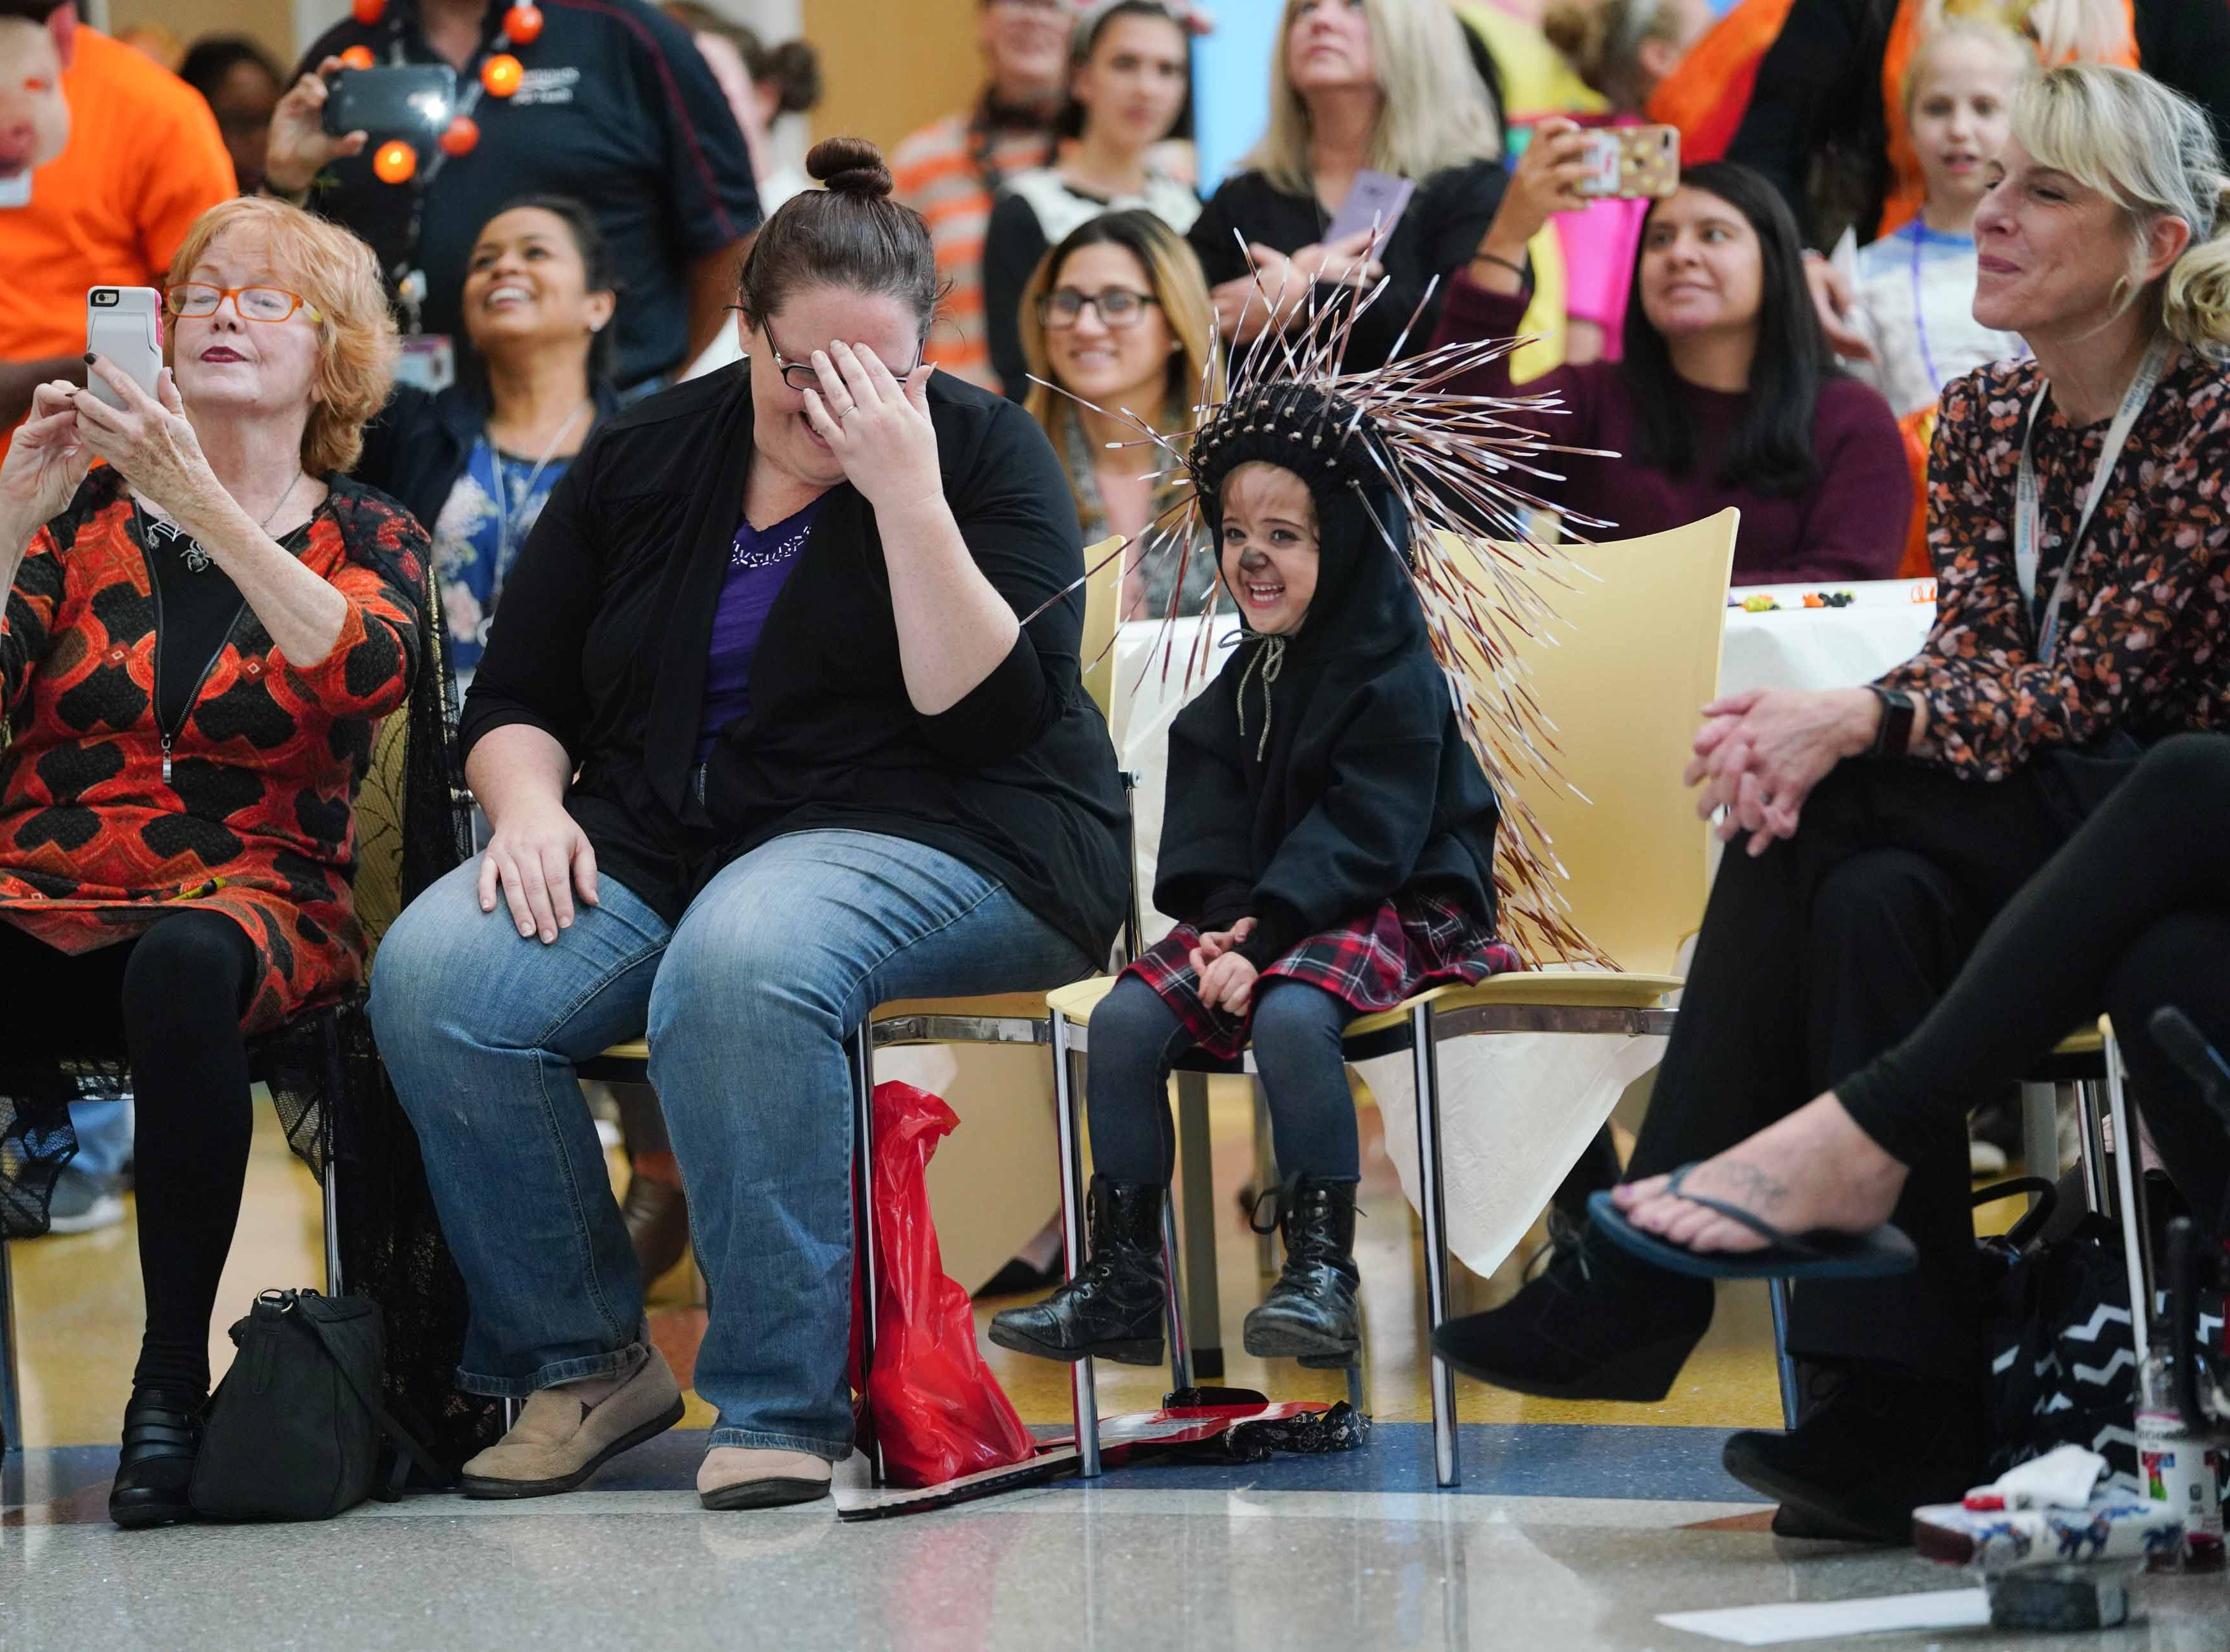 """(left to right)Eileen Wellman takes a photograph of staff members at Nemours/A.I. duPont Hospital for Children as they dressed in costume to entertain patients and family at the annual Halloween Lip Sync contest in the hospital's atrium on Halloween. Kimberly O'Grady laughs next her daughter Penelope, 4, who dressed at Ash from the movie """"Sing""""."""